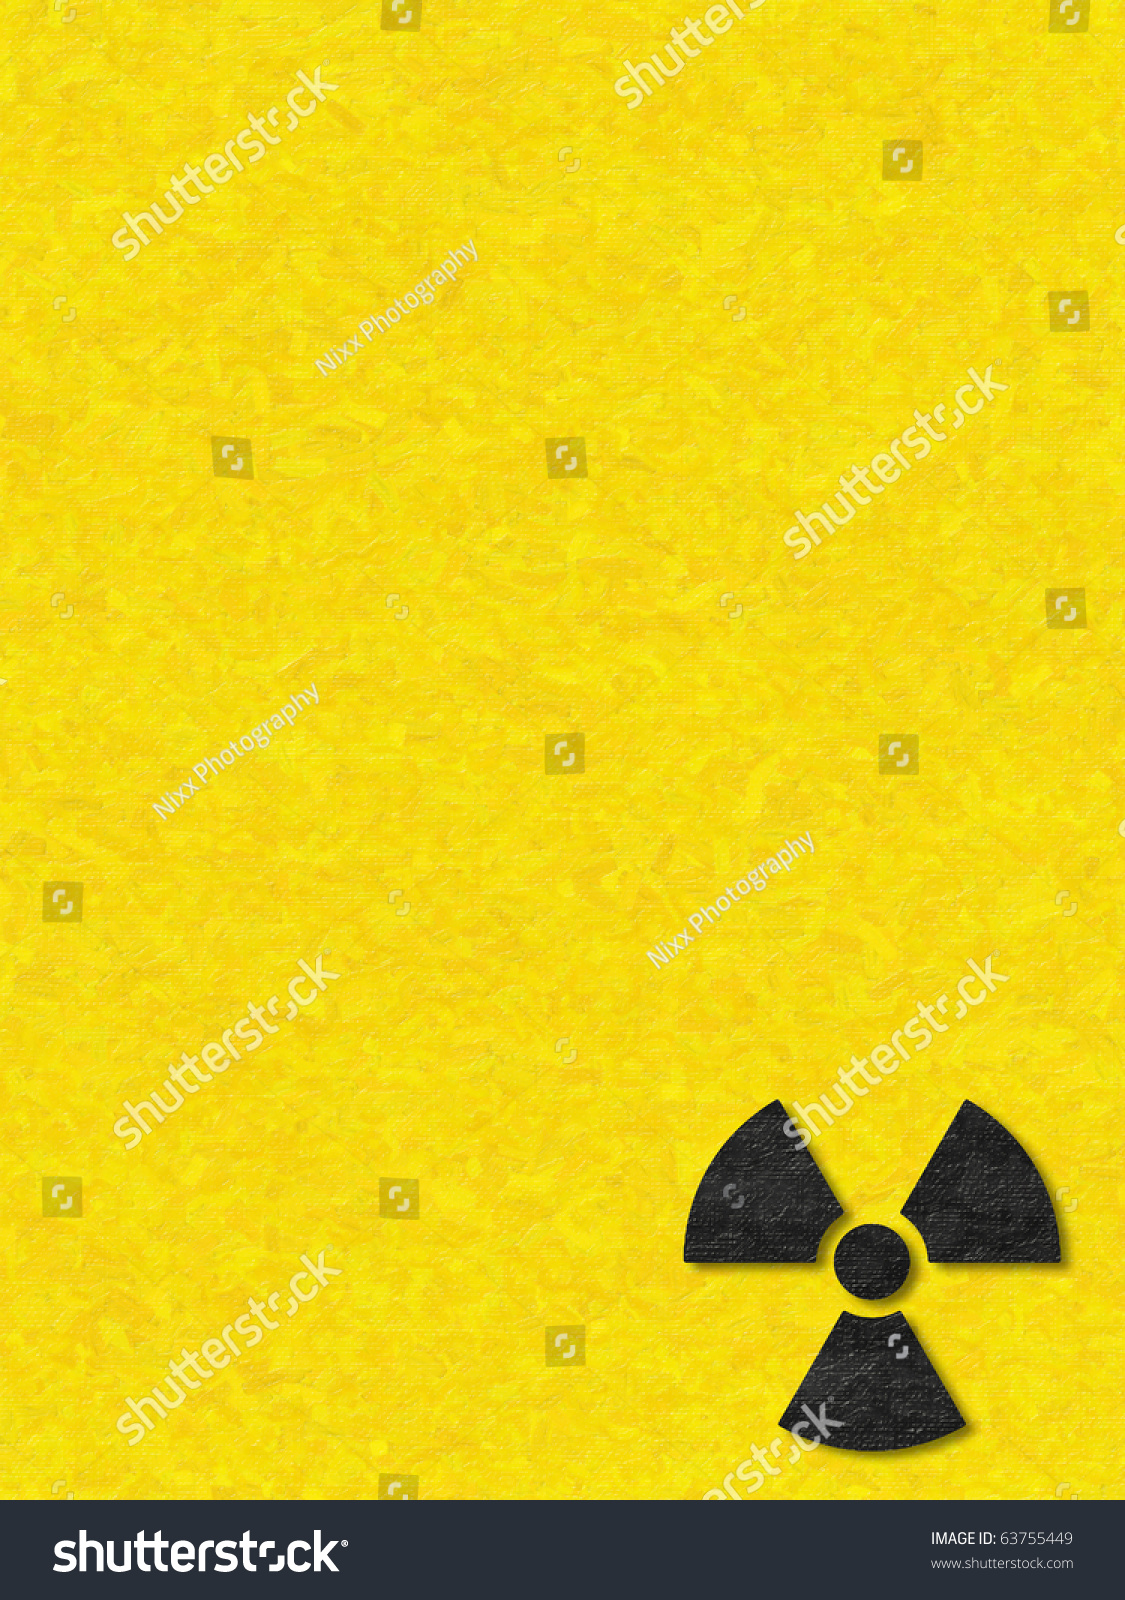 chemistry paper on radioisotope Hsc chemistry - the production of materials - production and use of radioisotopes.